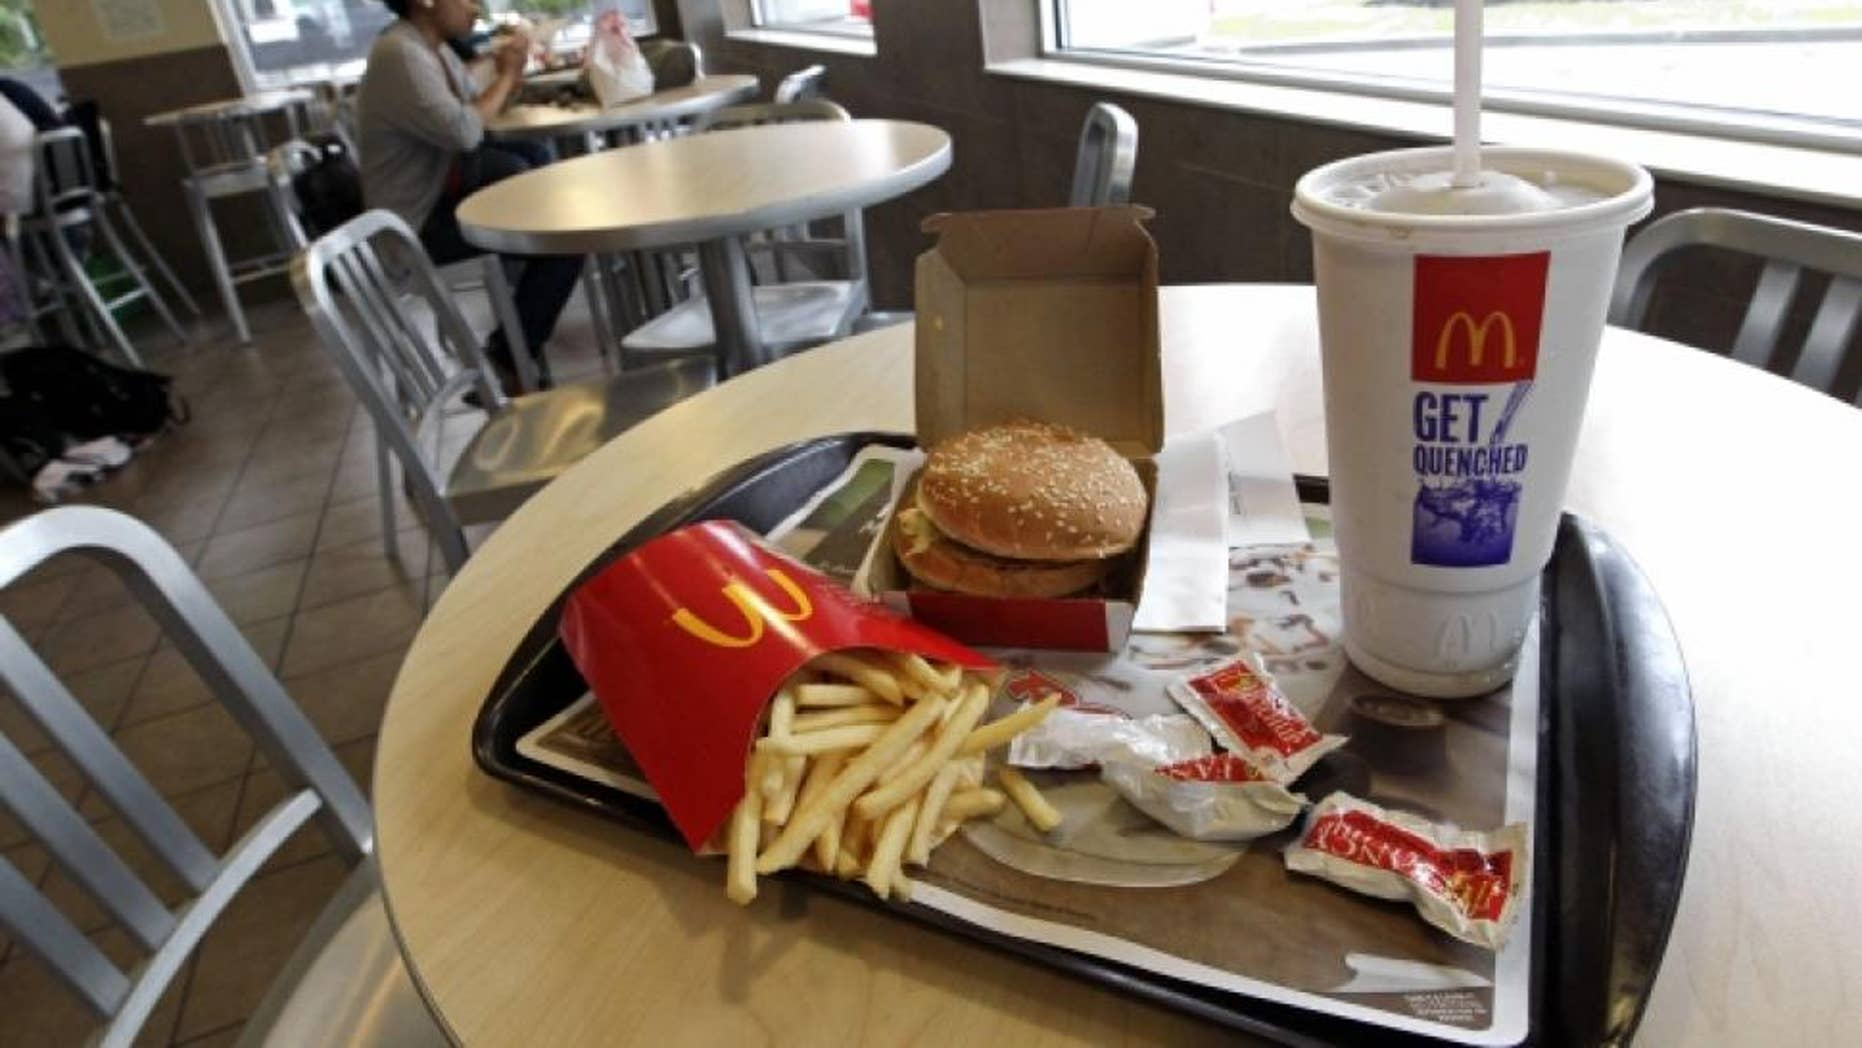 Not so great: McDonald's received the lowest score among national fast food chains.